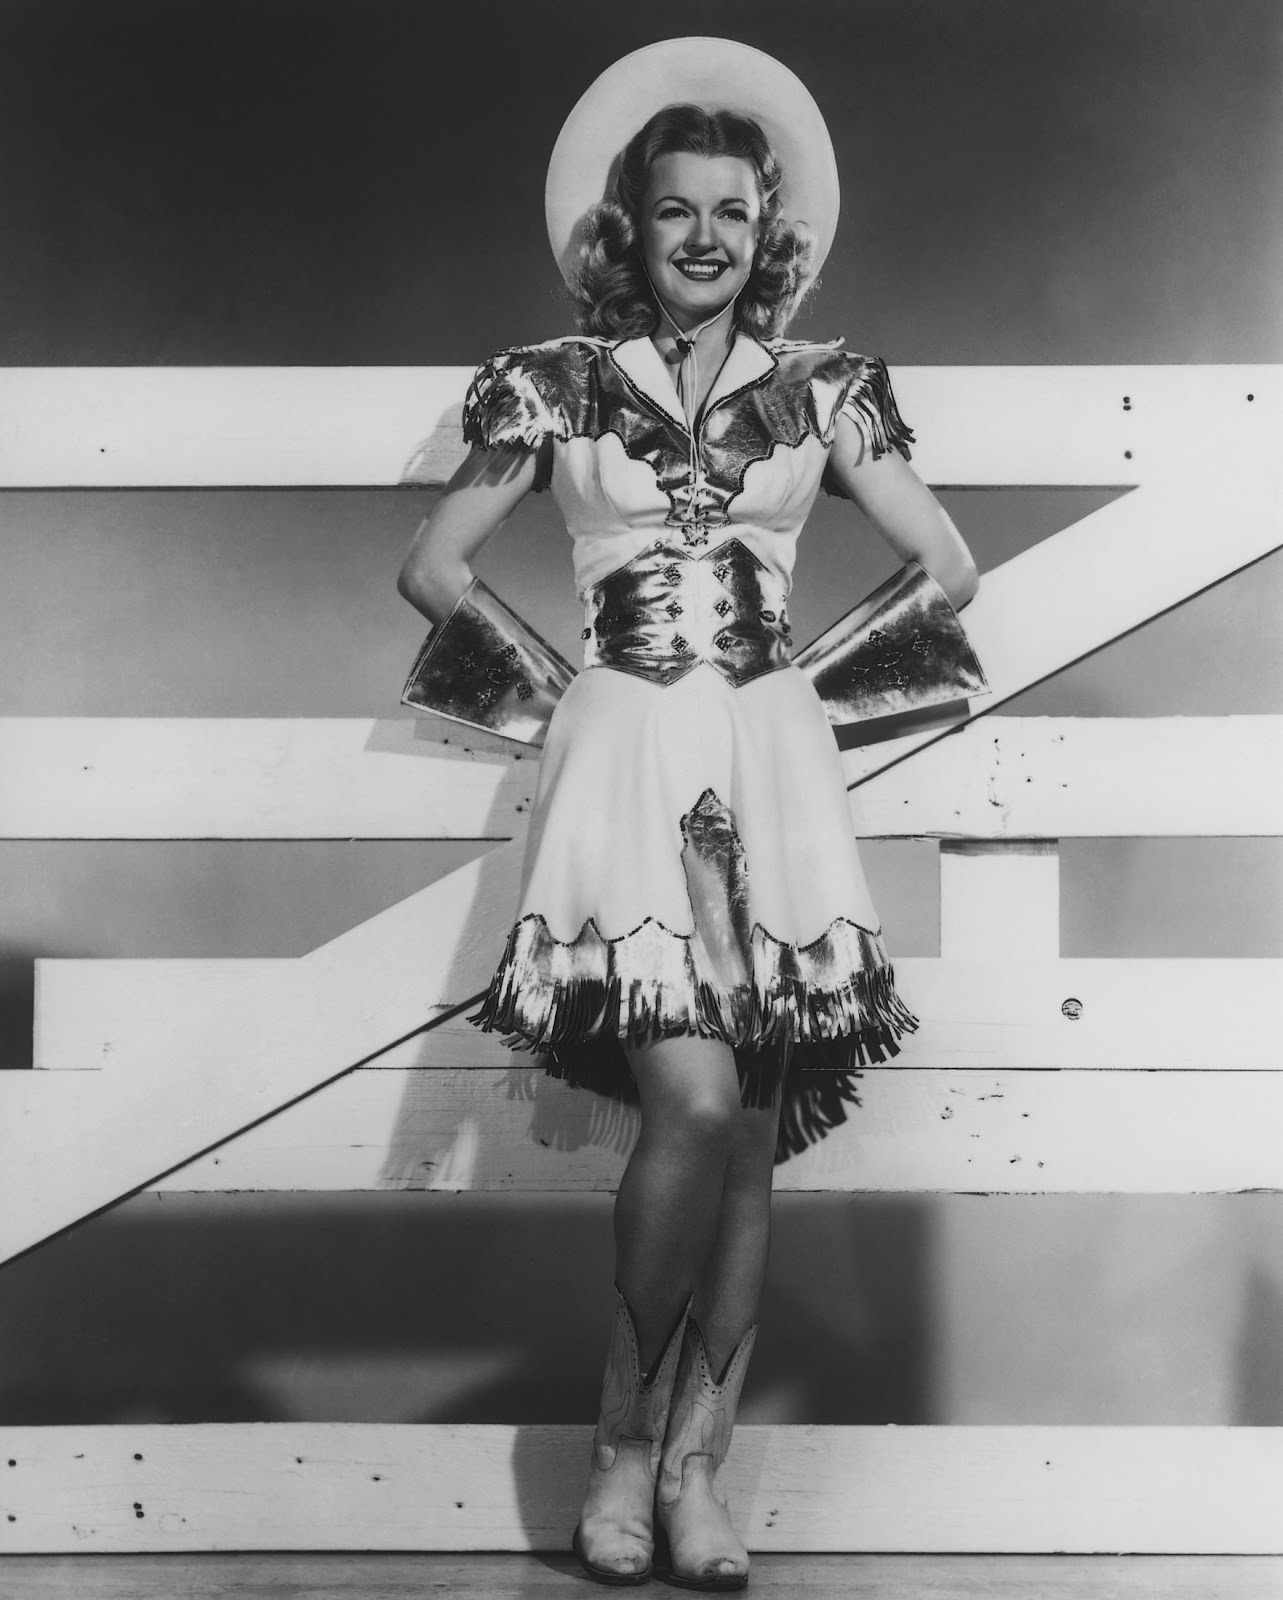 Sweetheart Of The Rodeo: Dale Evans, Queen Of The West